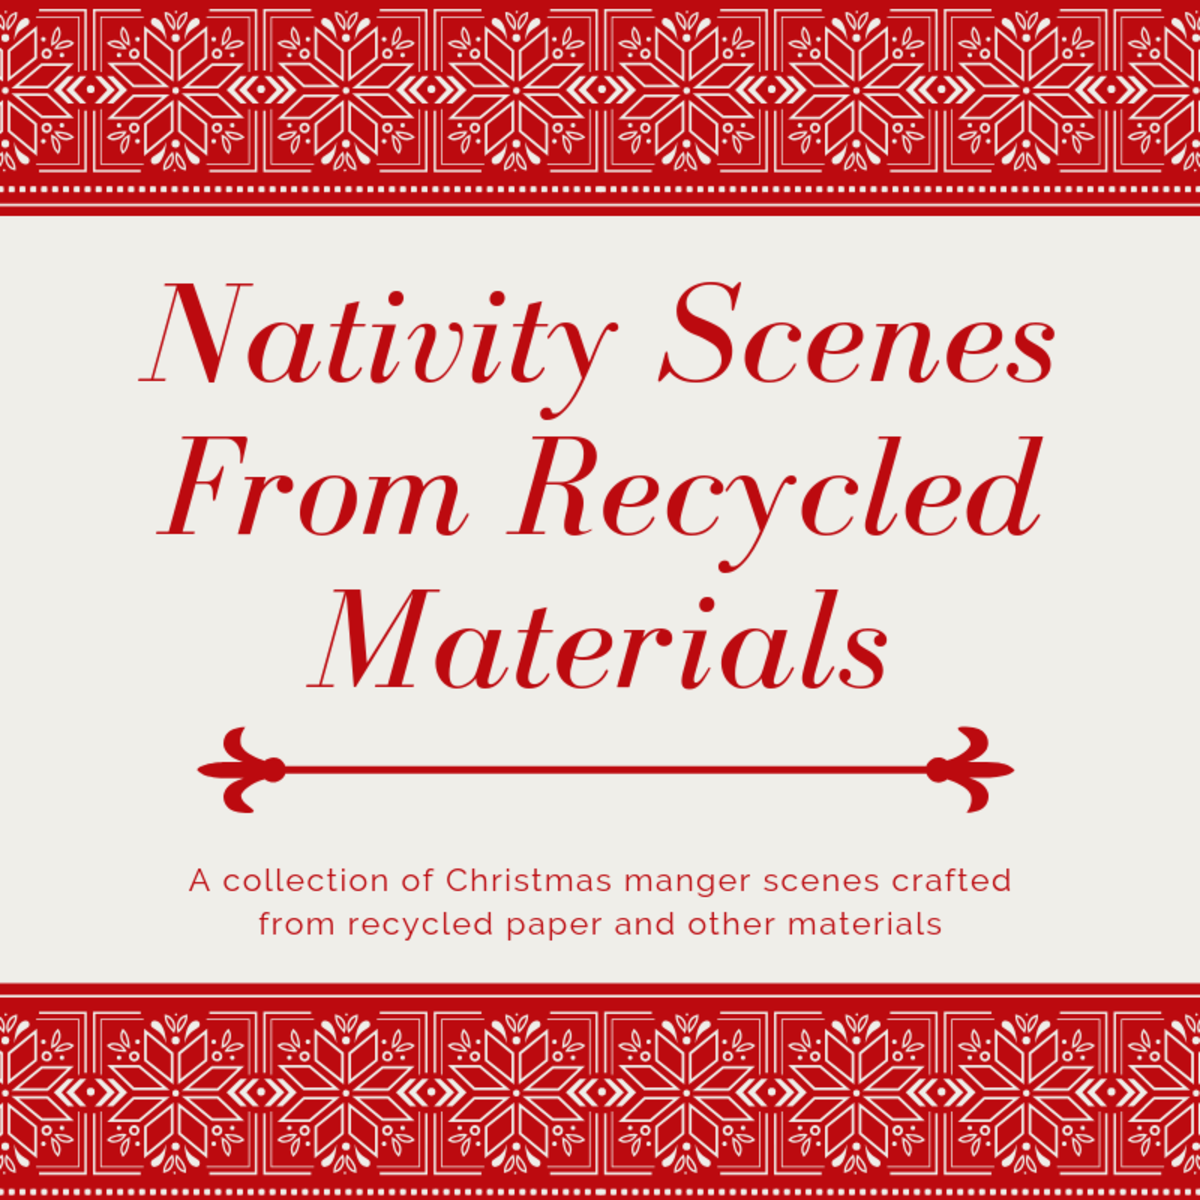 Mangers or Nativity Scene Displays Using Recycled Papers and Materials